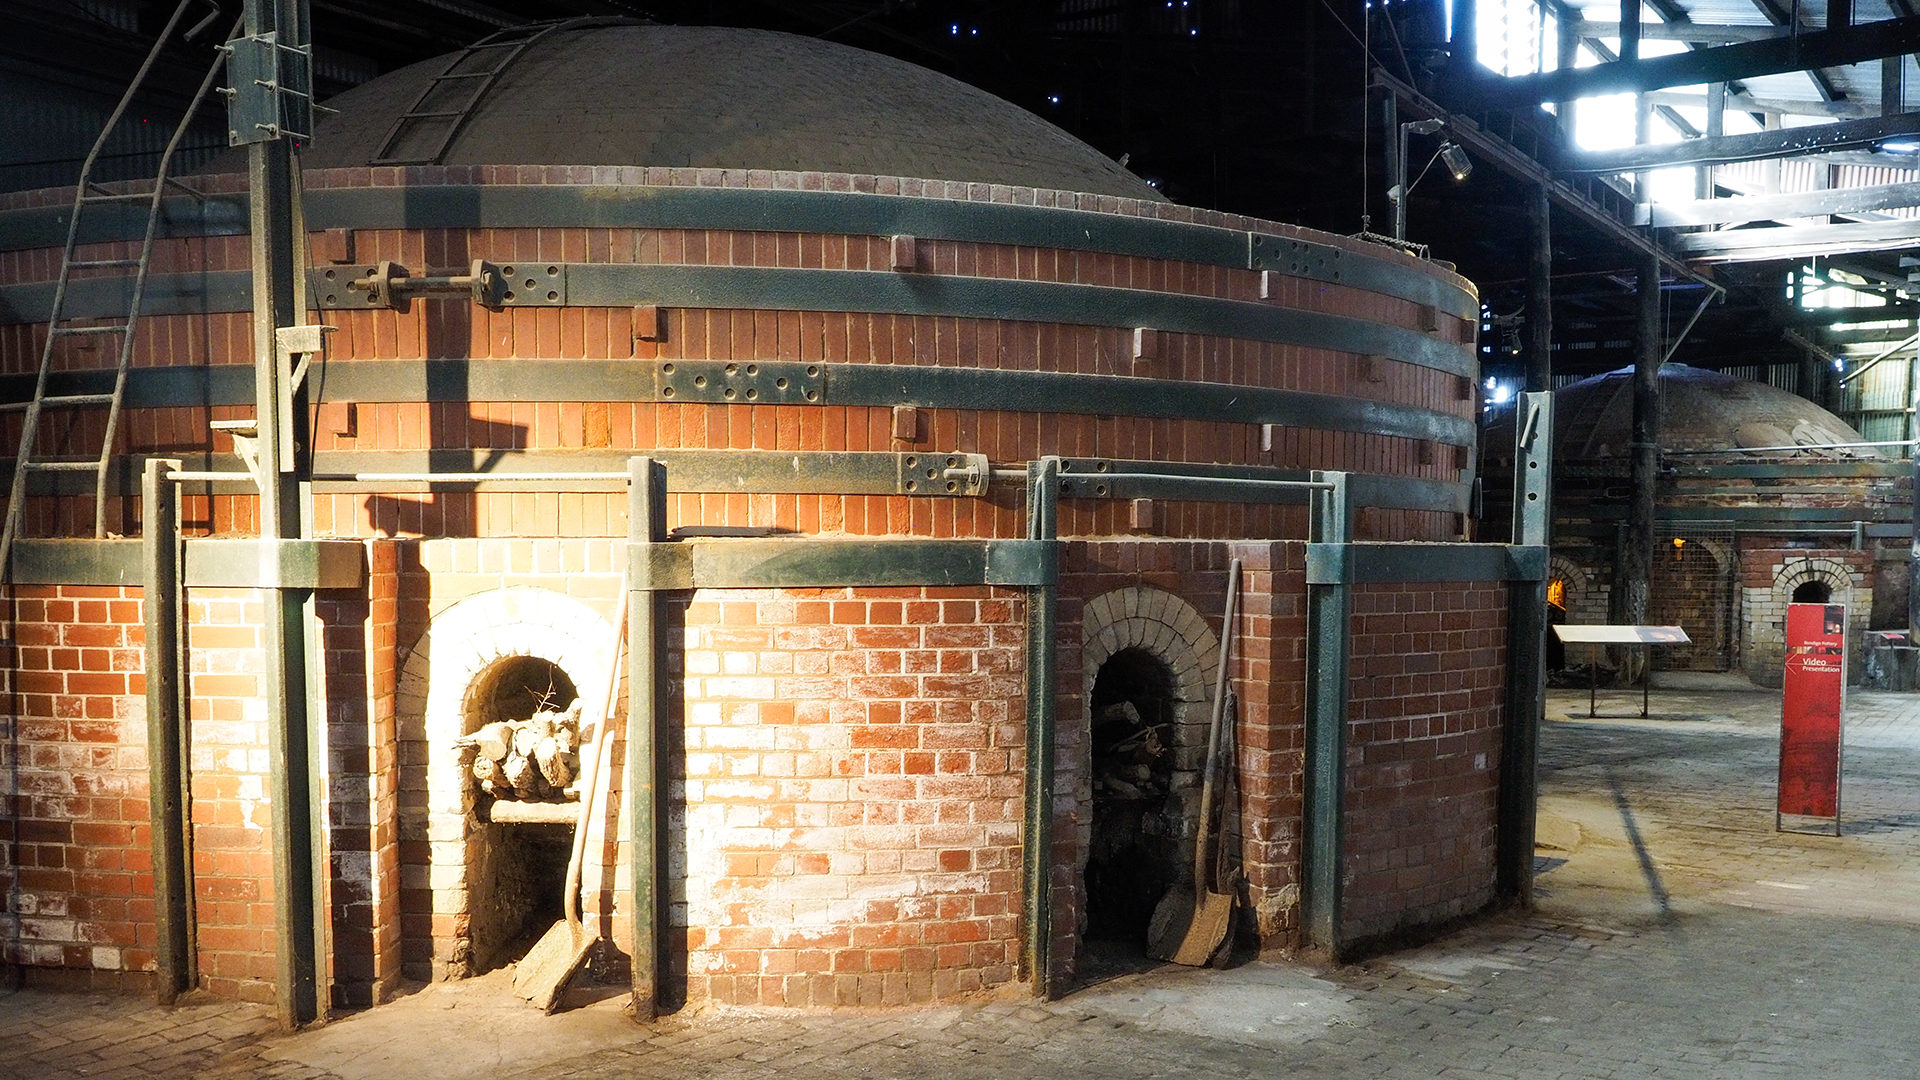 The factory tour is accessible throughout including the old kilns